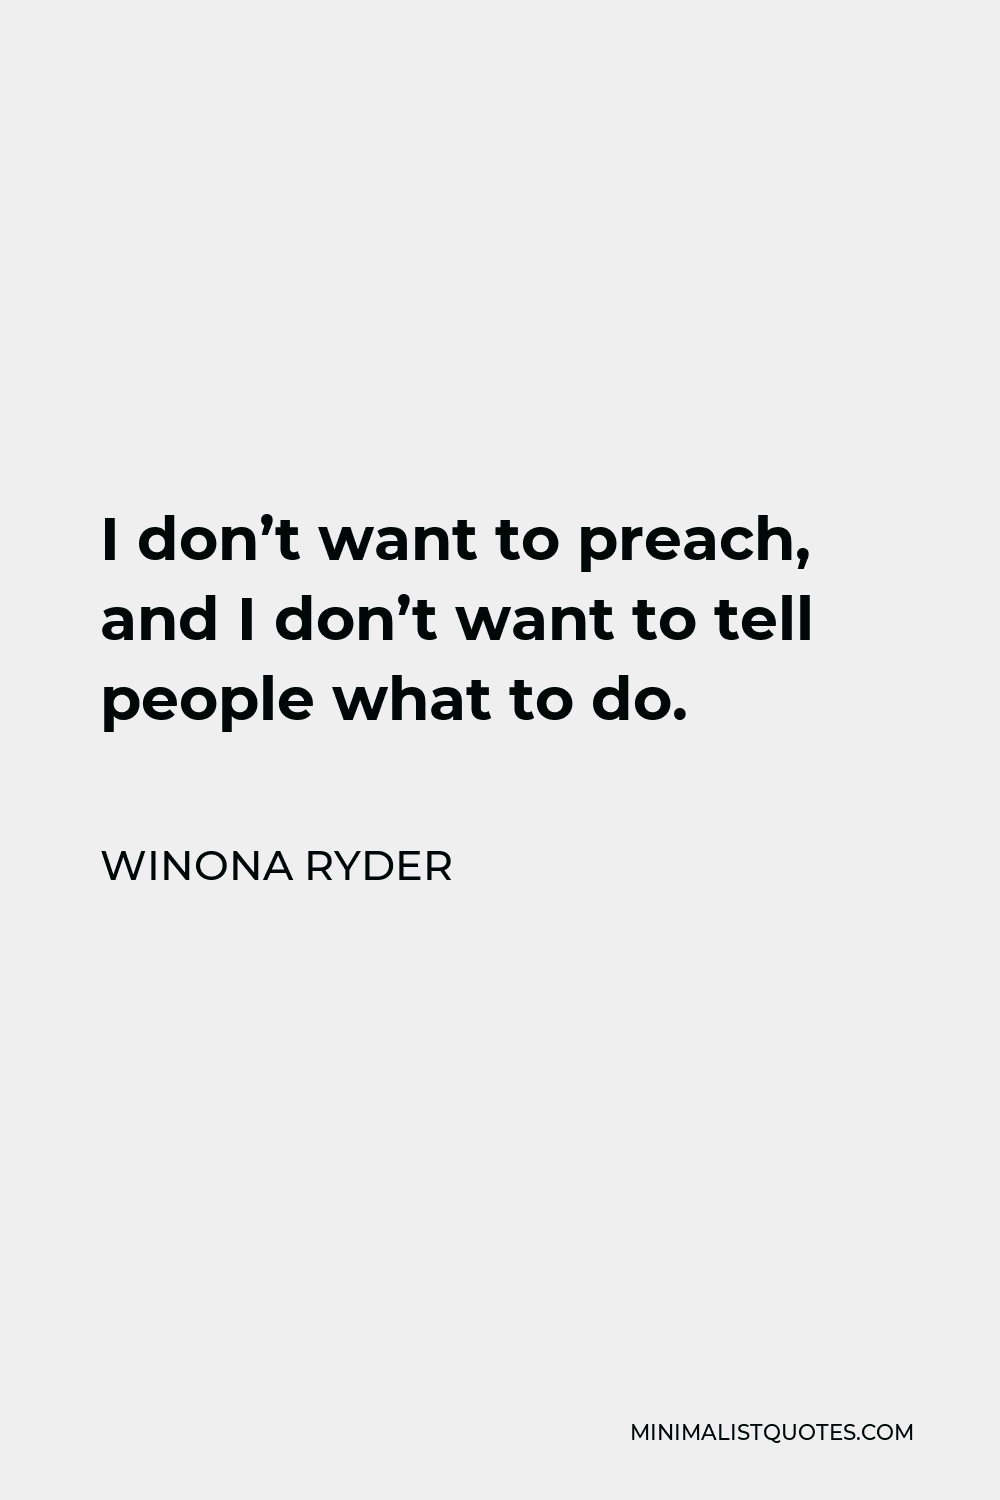 Winona Ryder Quote - I don't want to preach, and I don't want to tell people what to do.